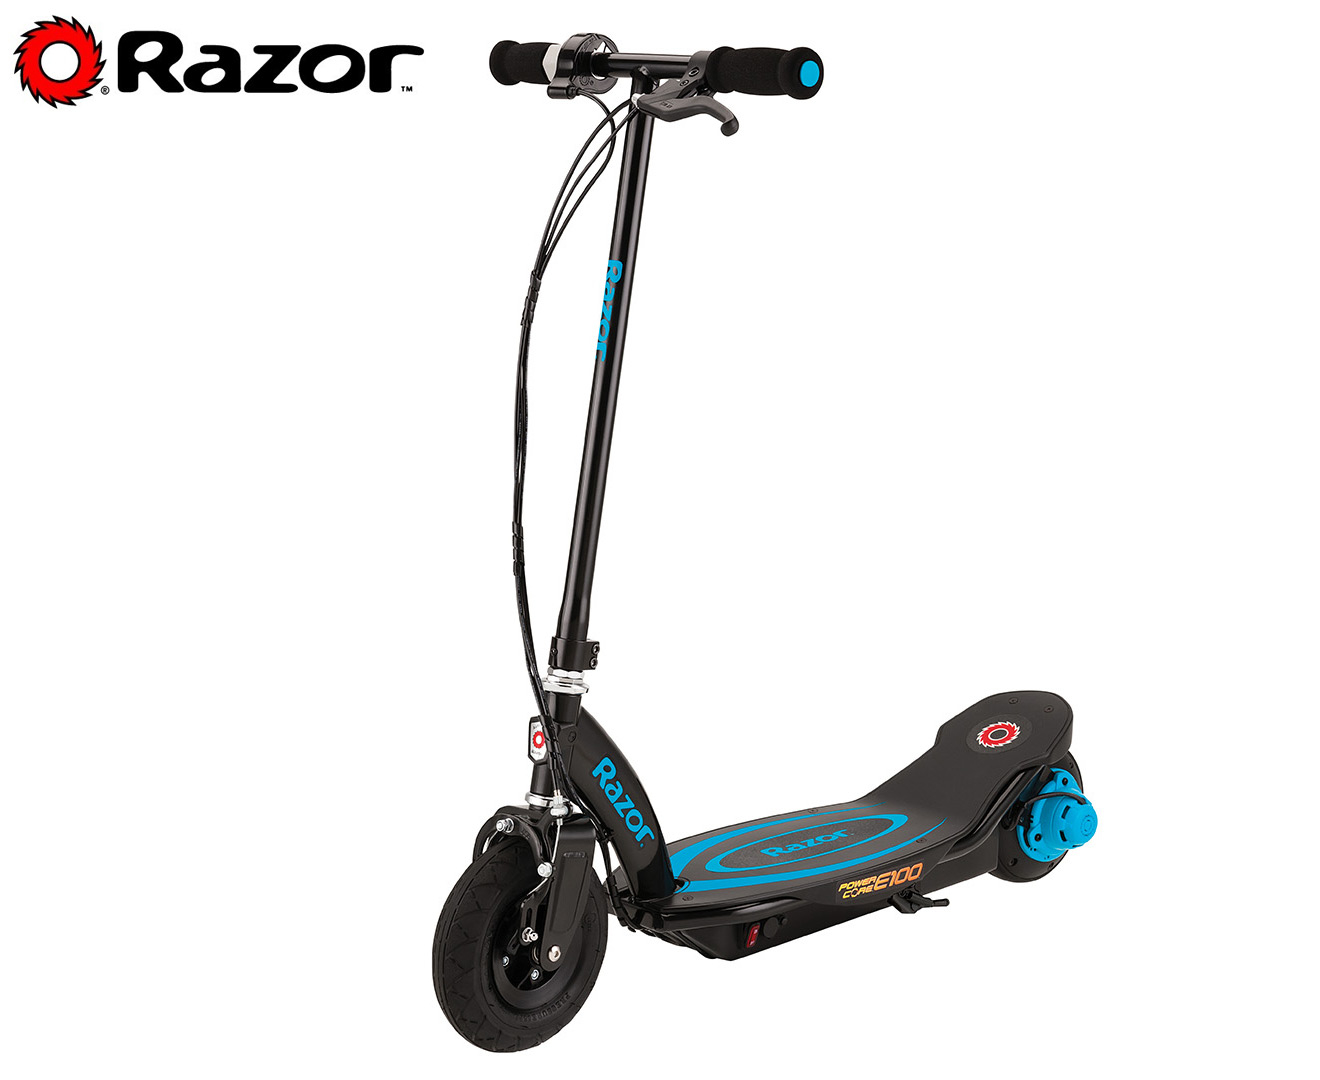 Razor Powercore E100 Electric Scooter Black Ebay